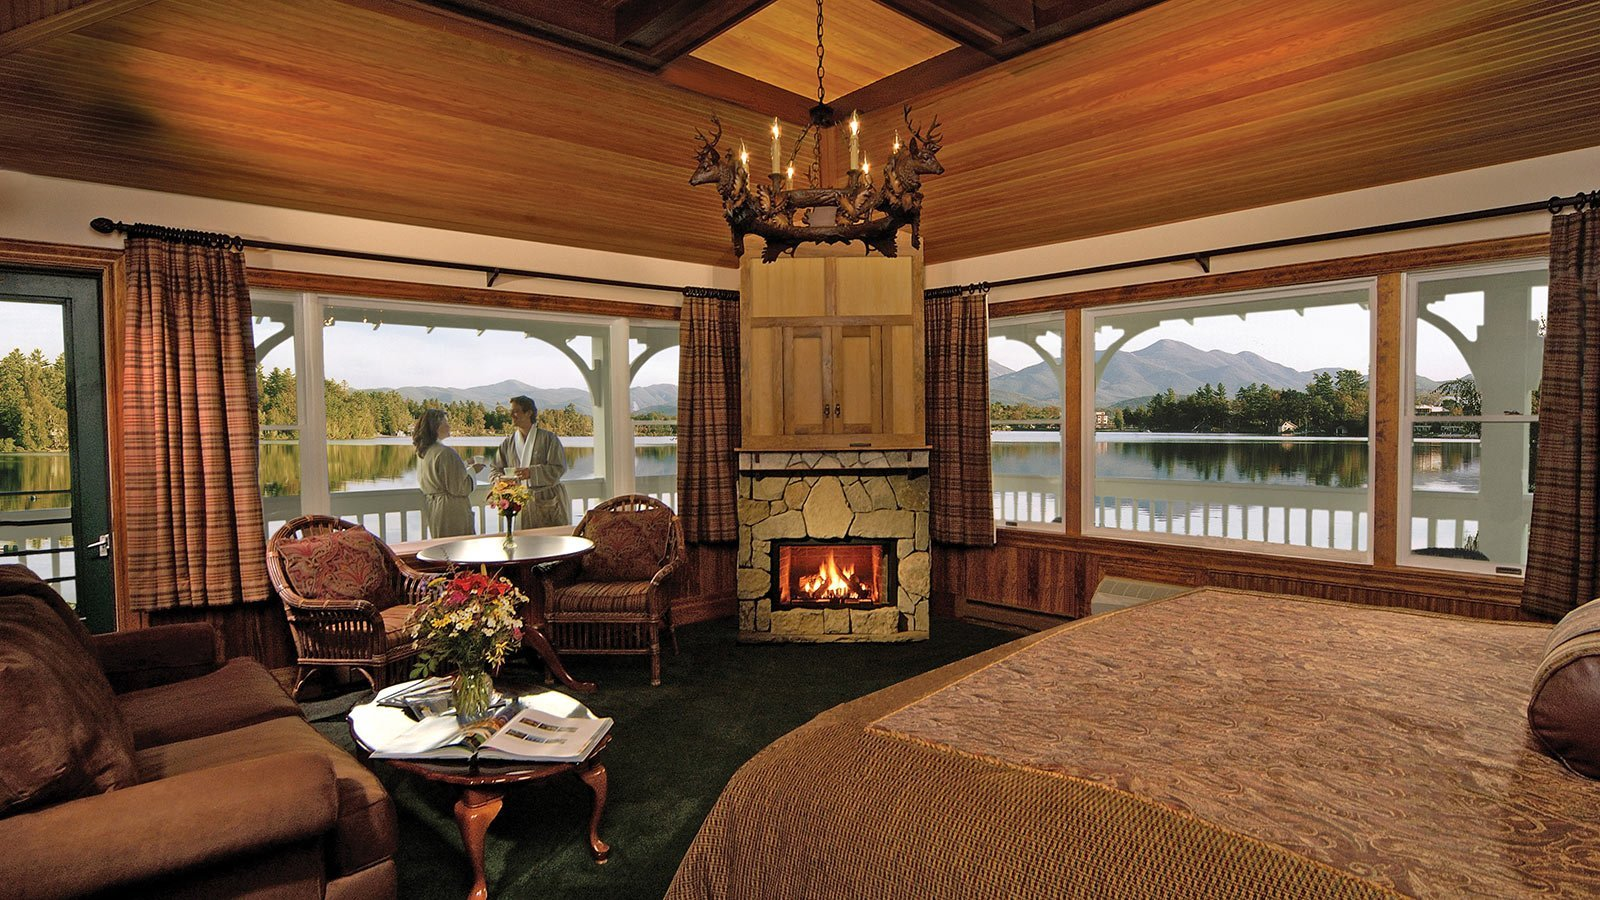 Main room with large windows and a view of the lake and mountains